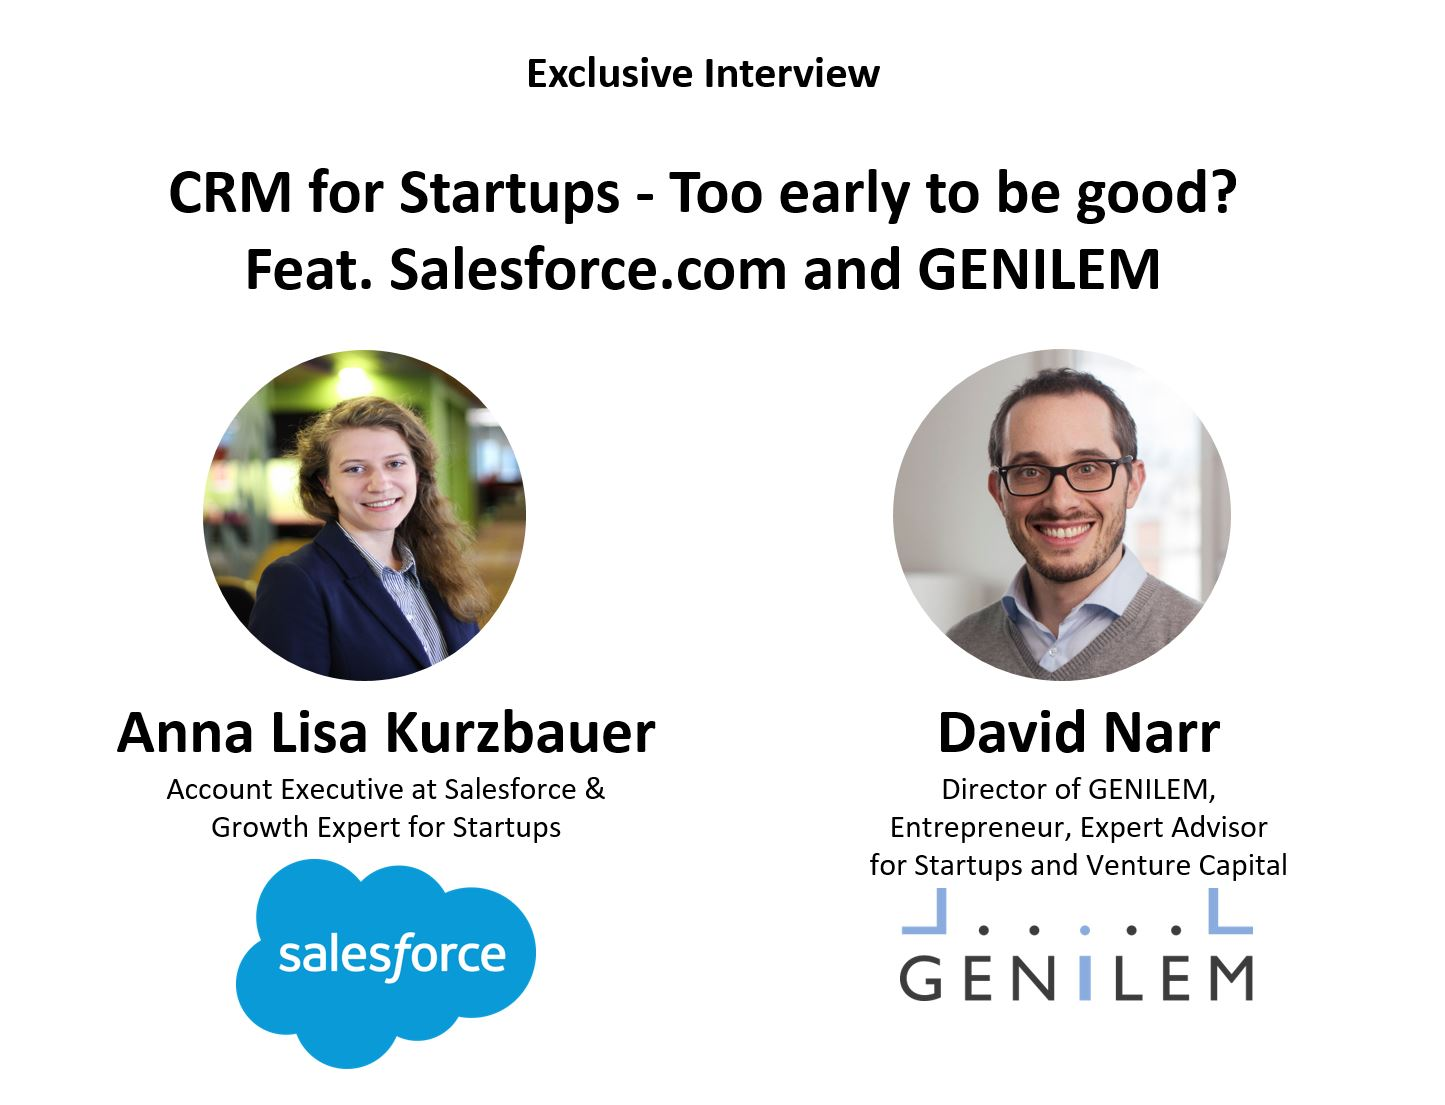 CRM for Startups - Too early to be good?